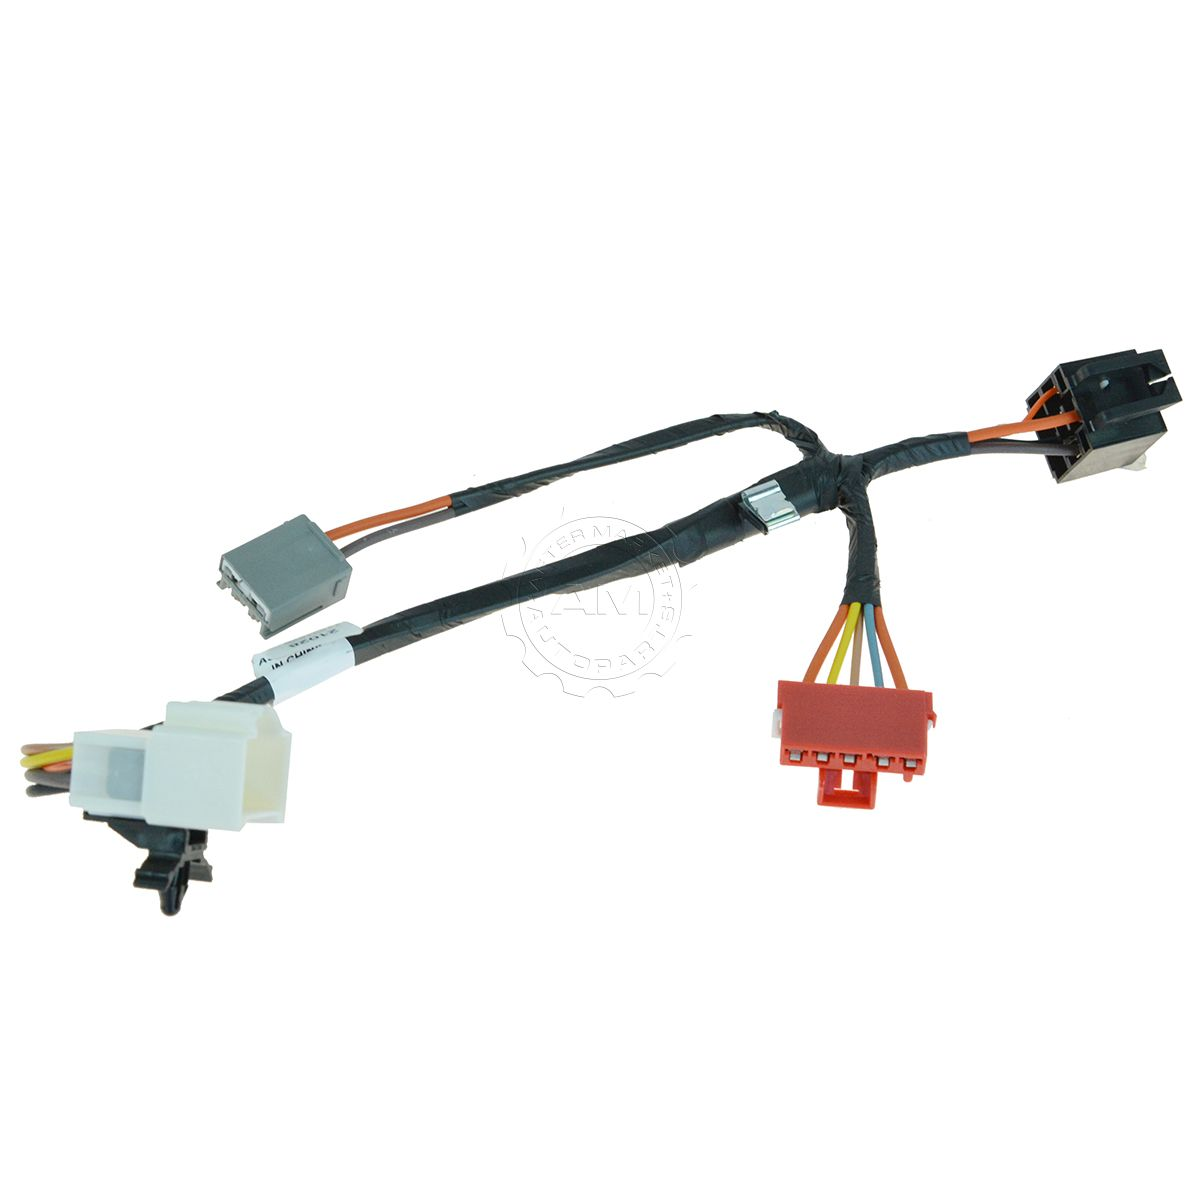 oem blower motor resistor wiring harness pigtail connector for h3 rh ebay com blower motor wiring overlay harness blower motor wiring harness cbt1c110